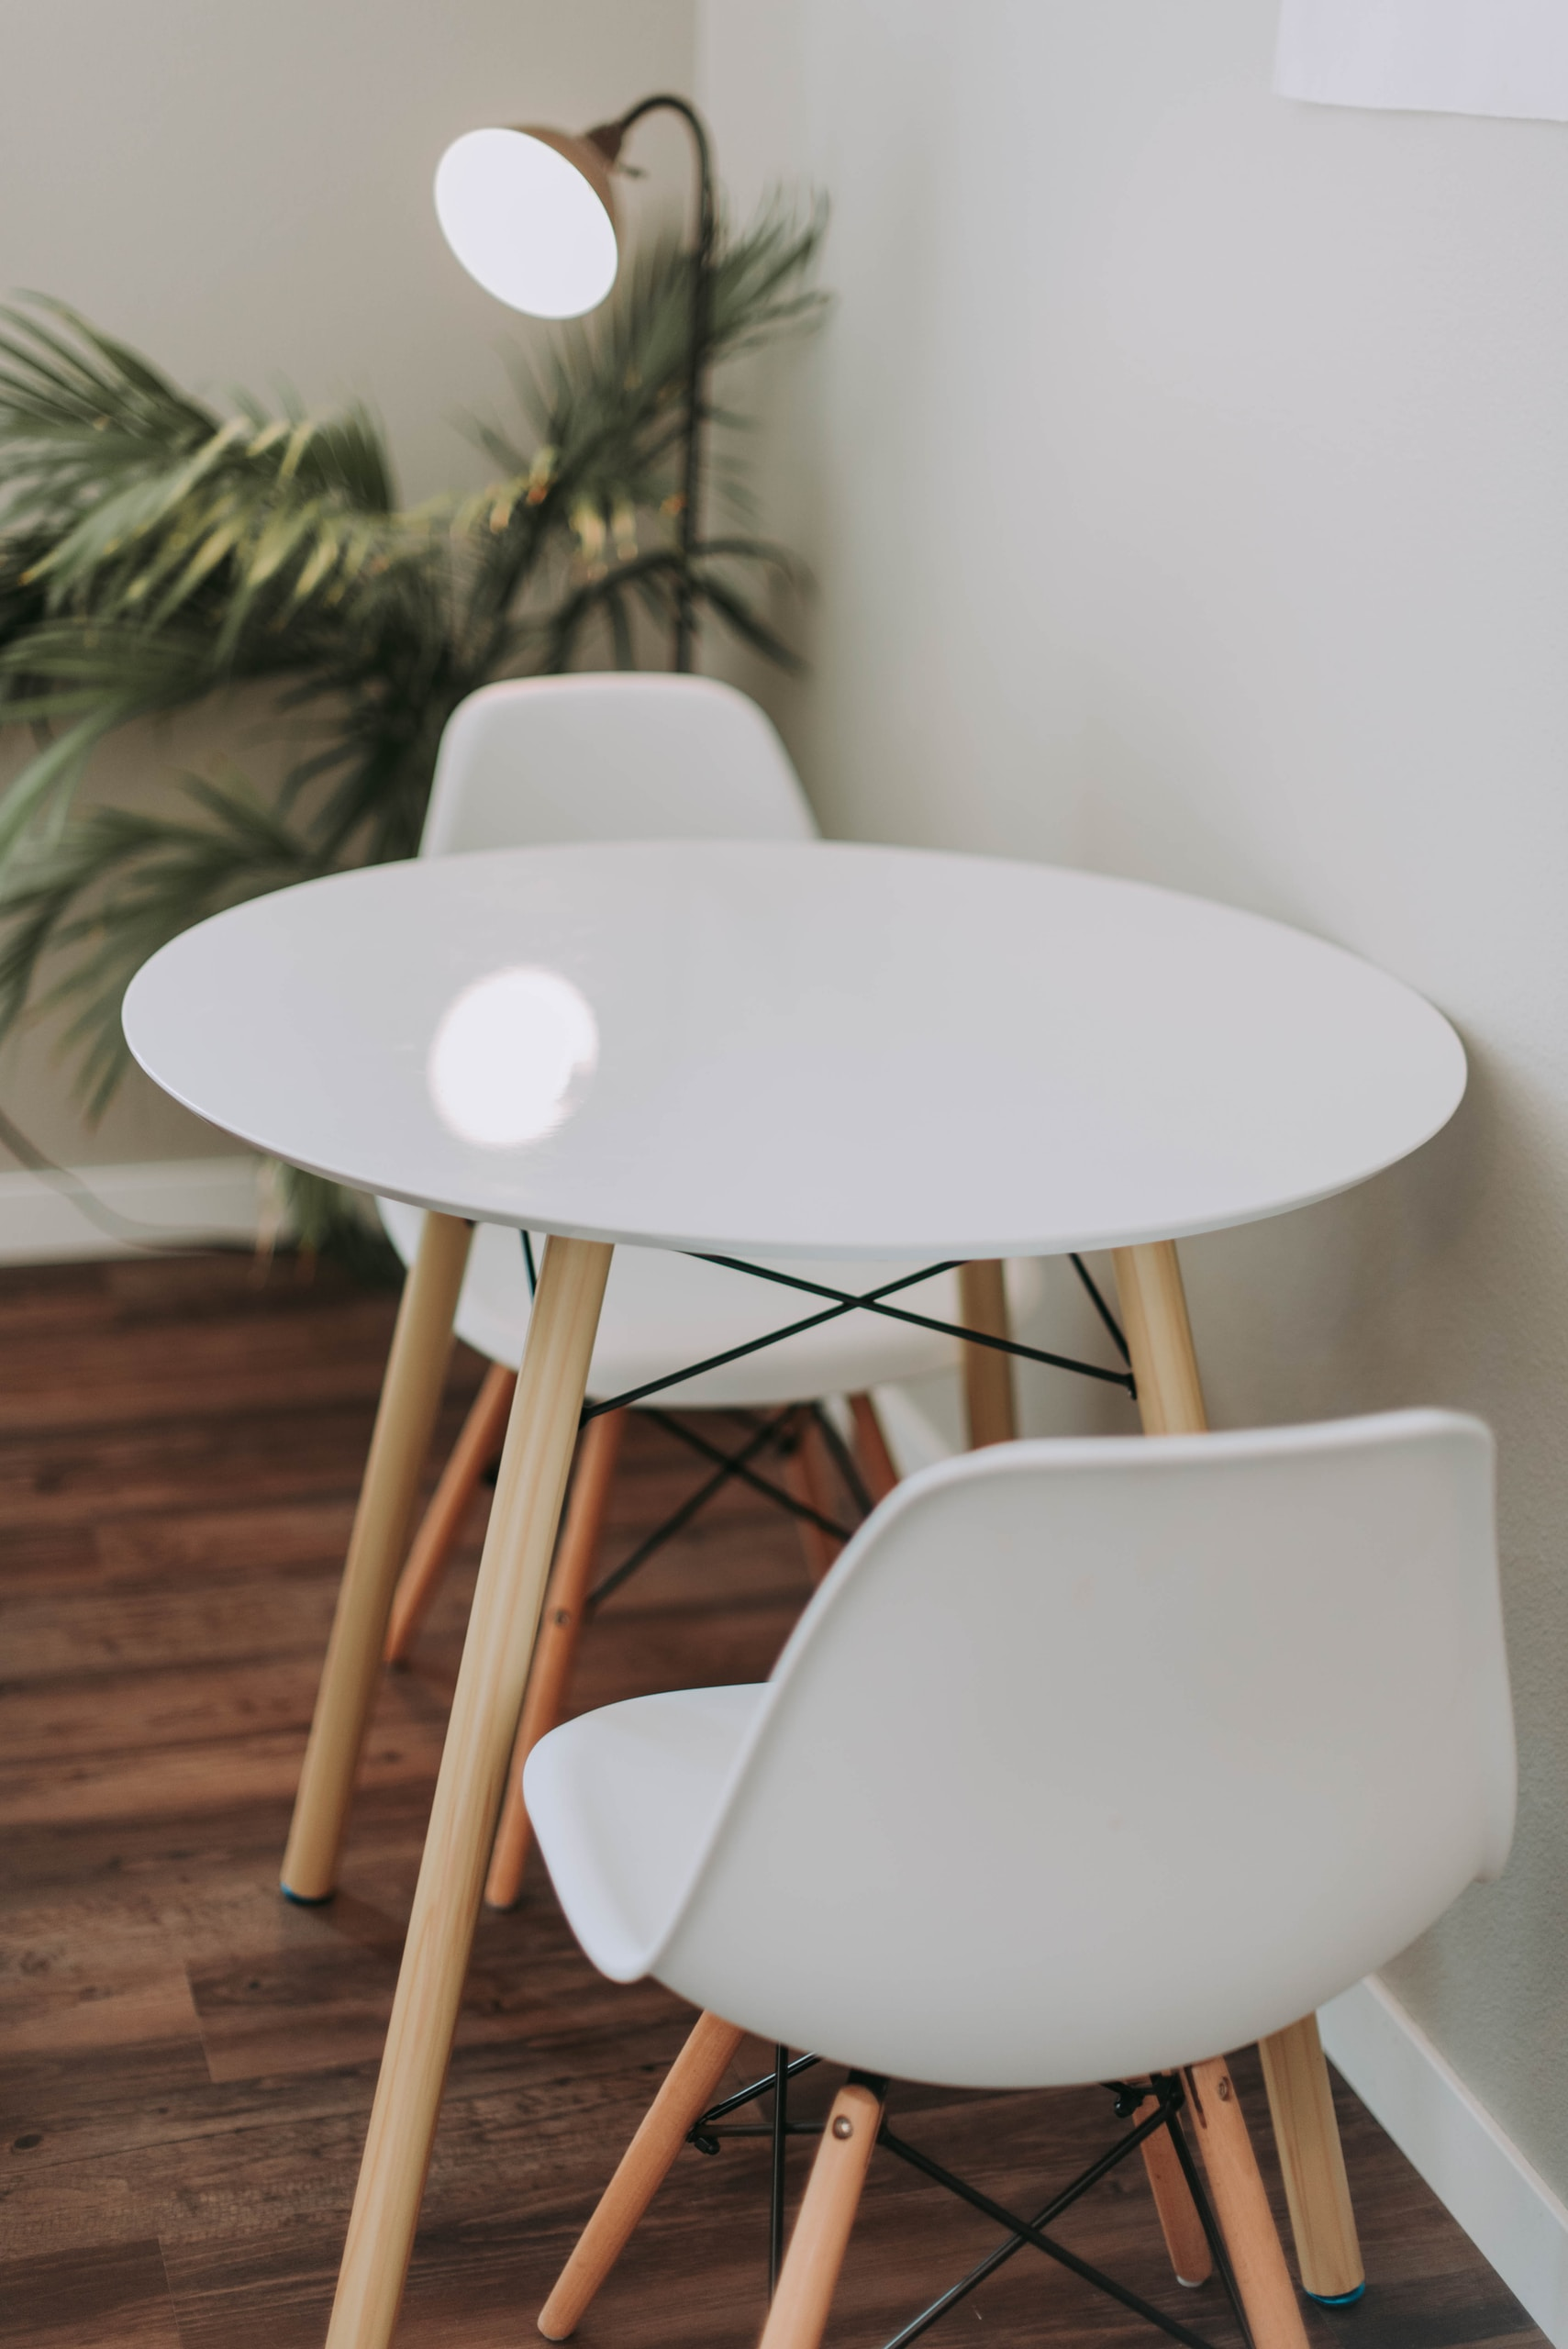 """round white wooden 3-piece bistro set beside floor lamp  - photo 1533090481720 856c6e3c1fdc ixlib rb 1 - How to use """"Light"""" in your home"""